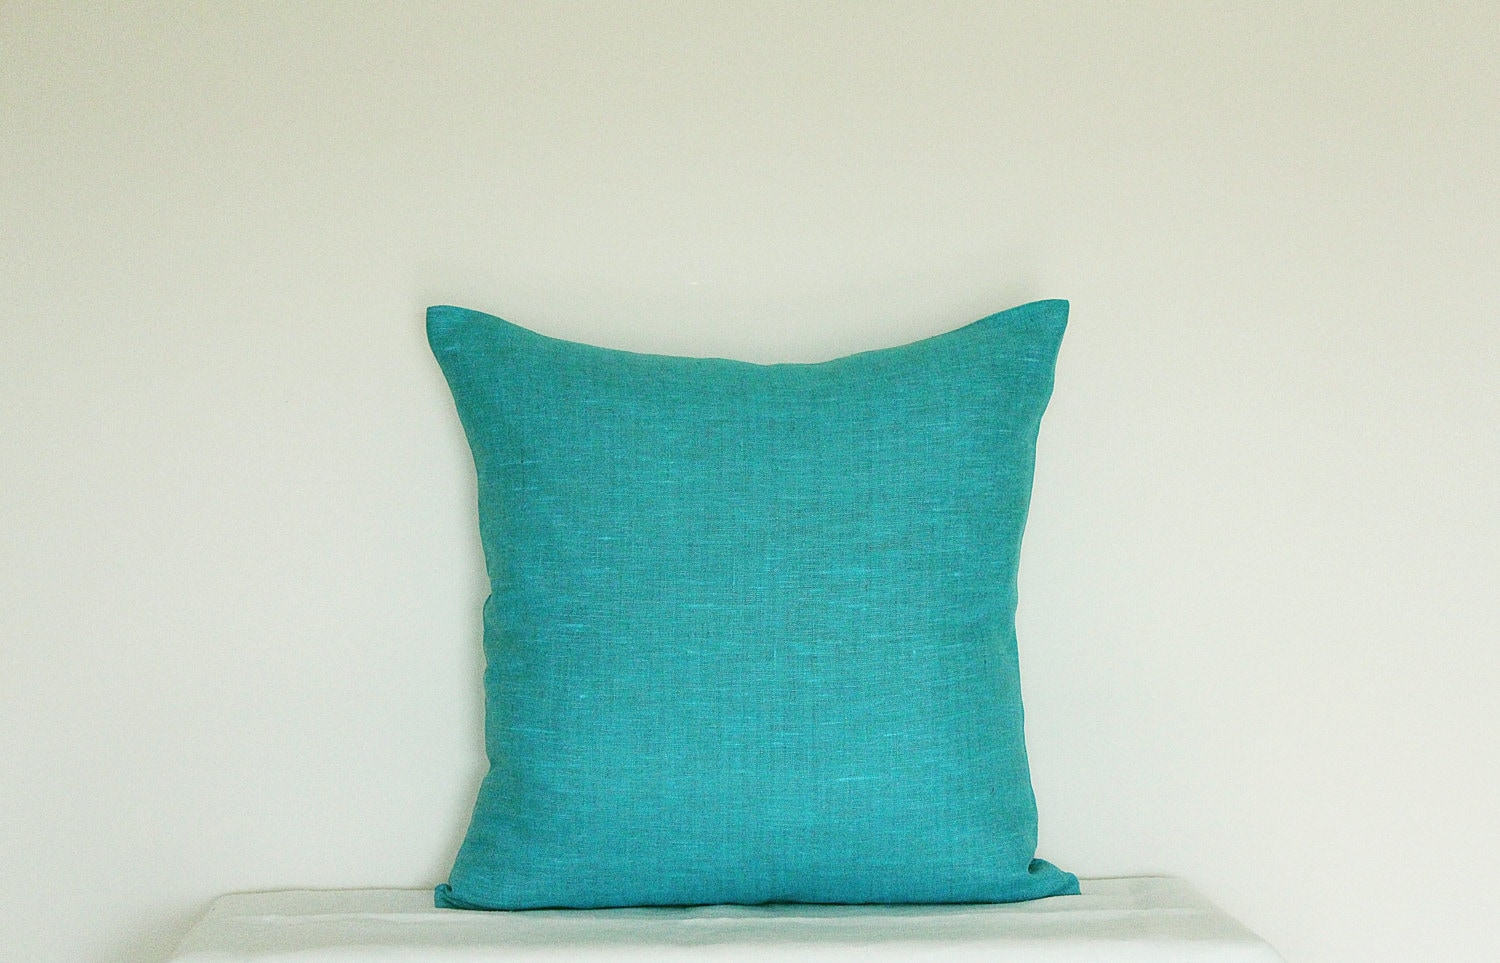 Teal Blue Throw Pillow : Decorative Bright Teal Blue Pillow Turquoise Pillow Cover